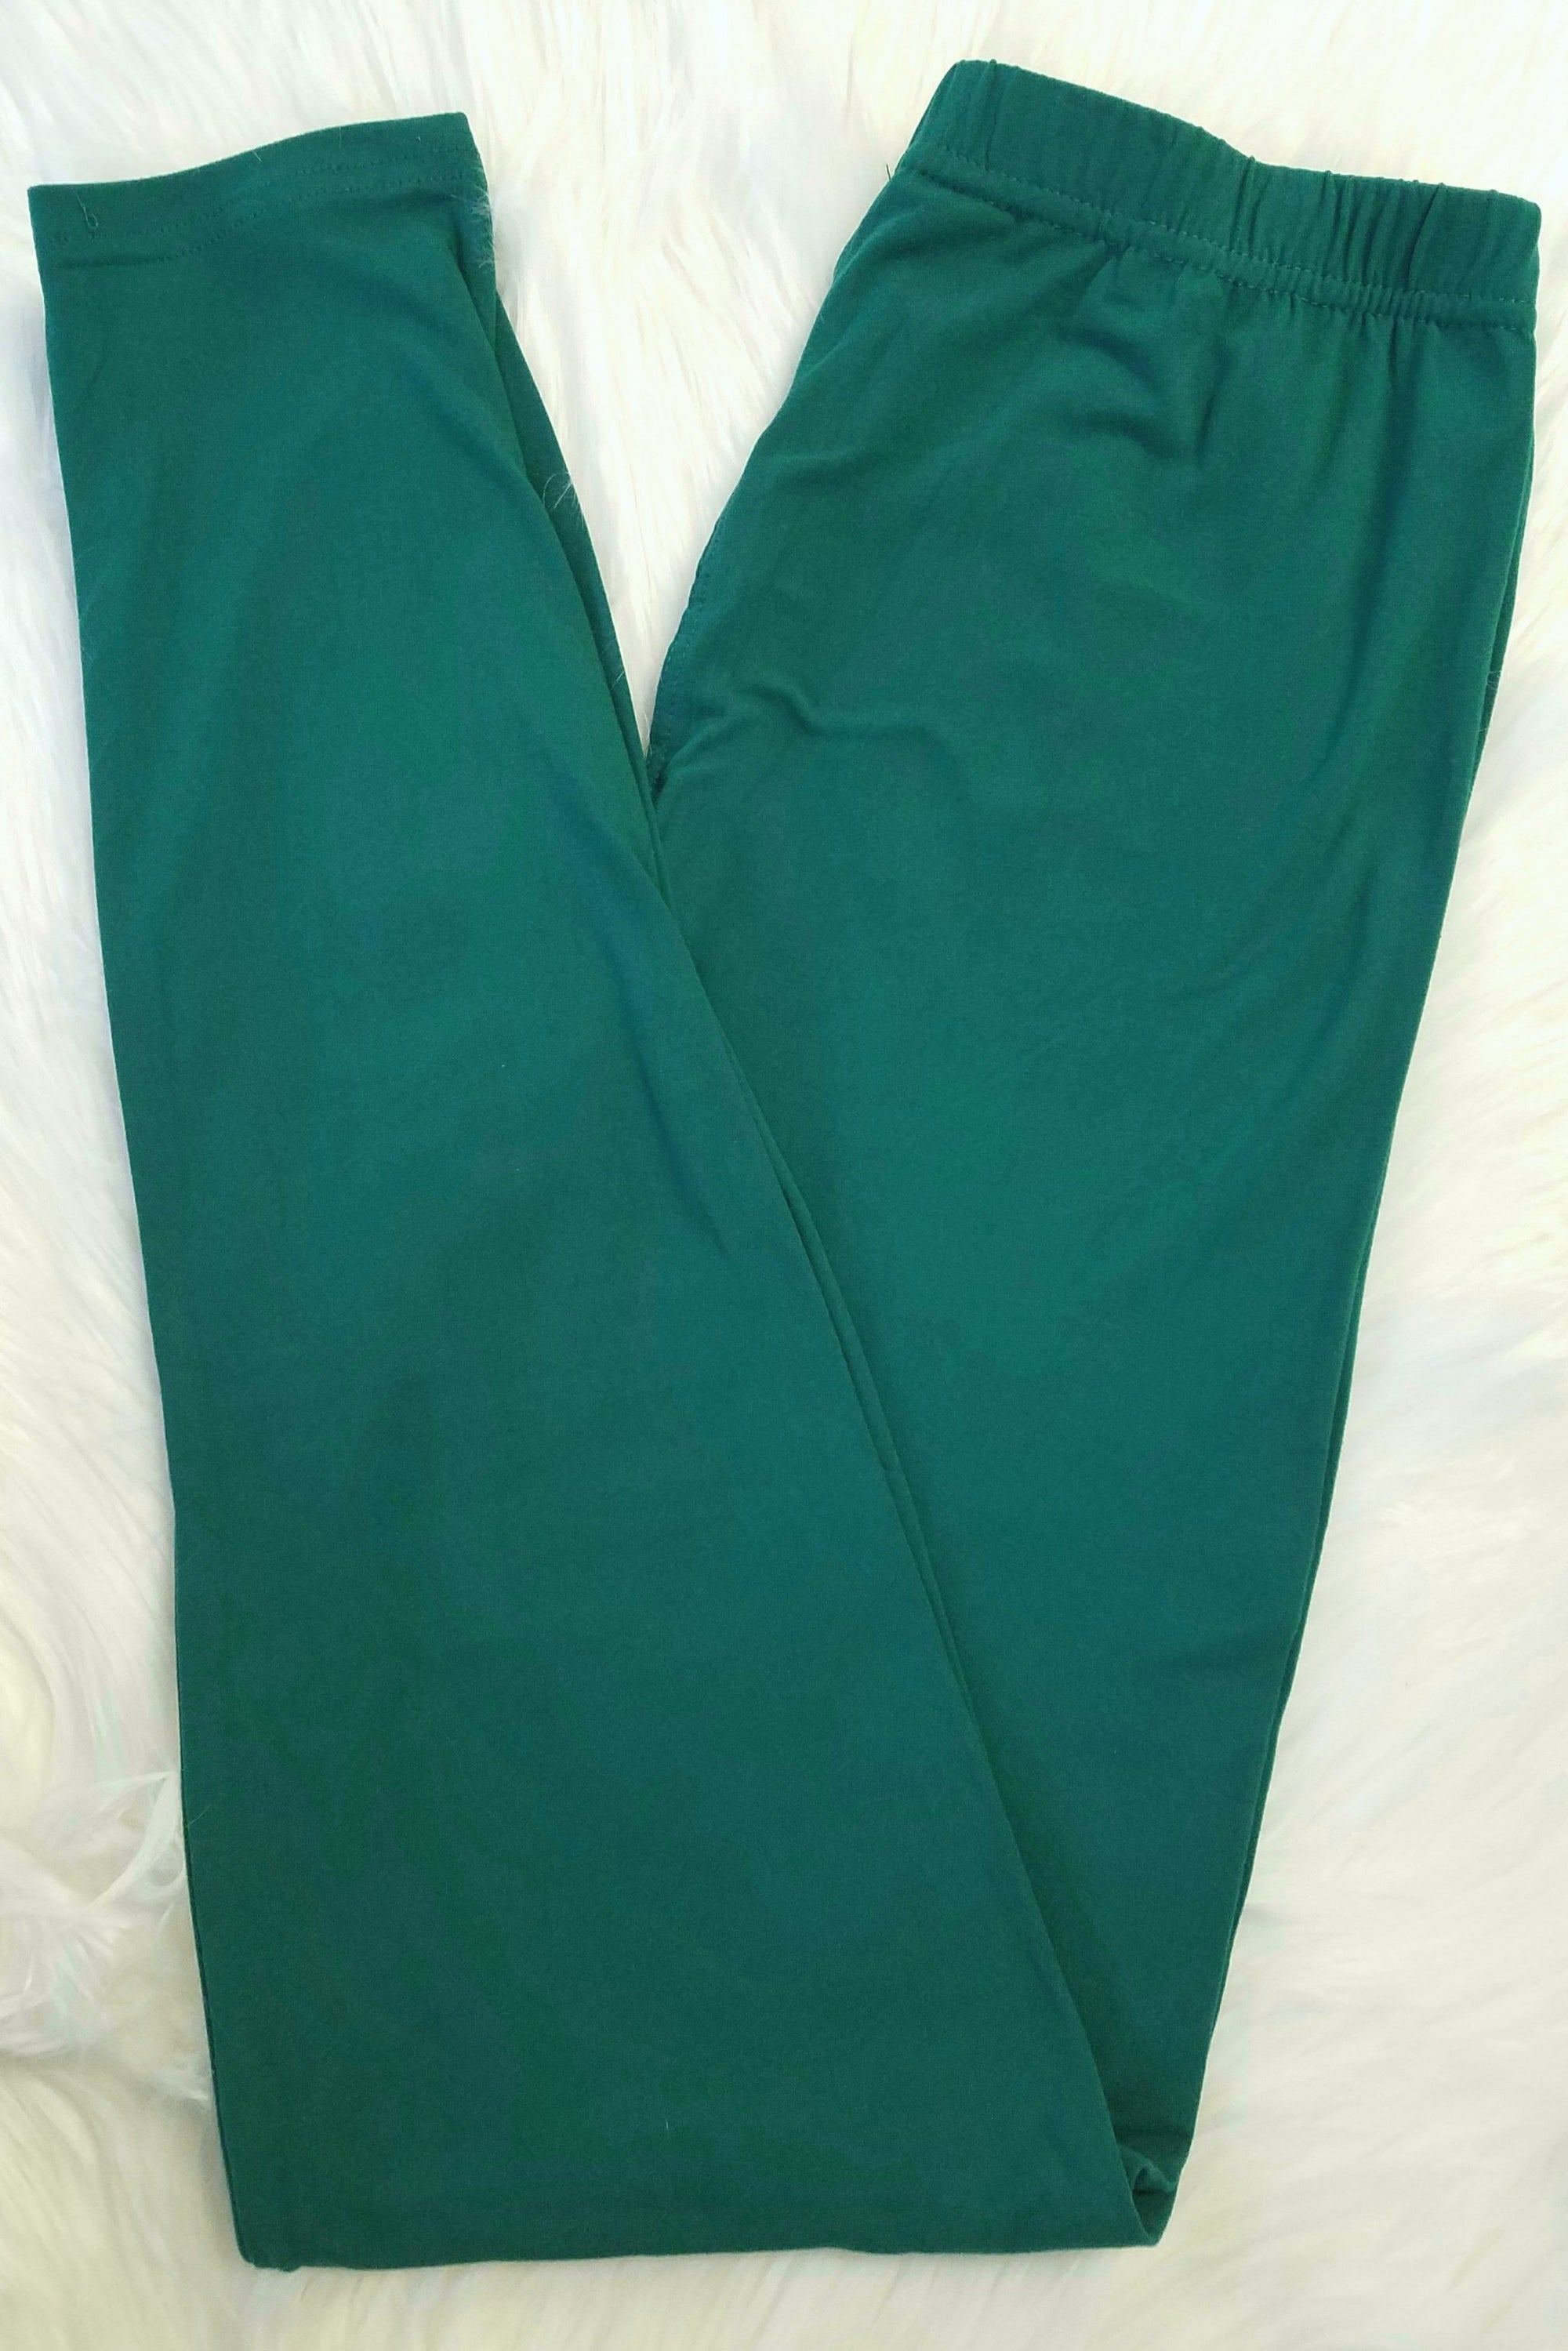 Solid Jade Leggings